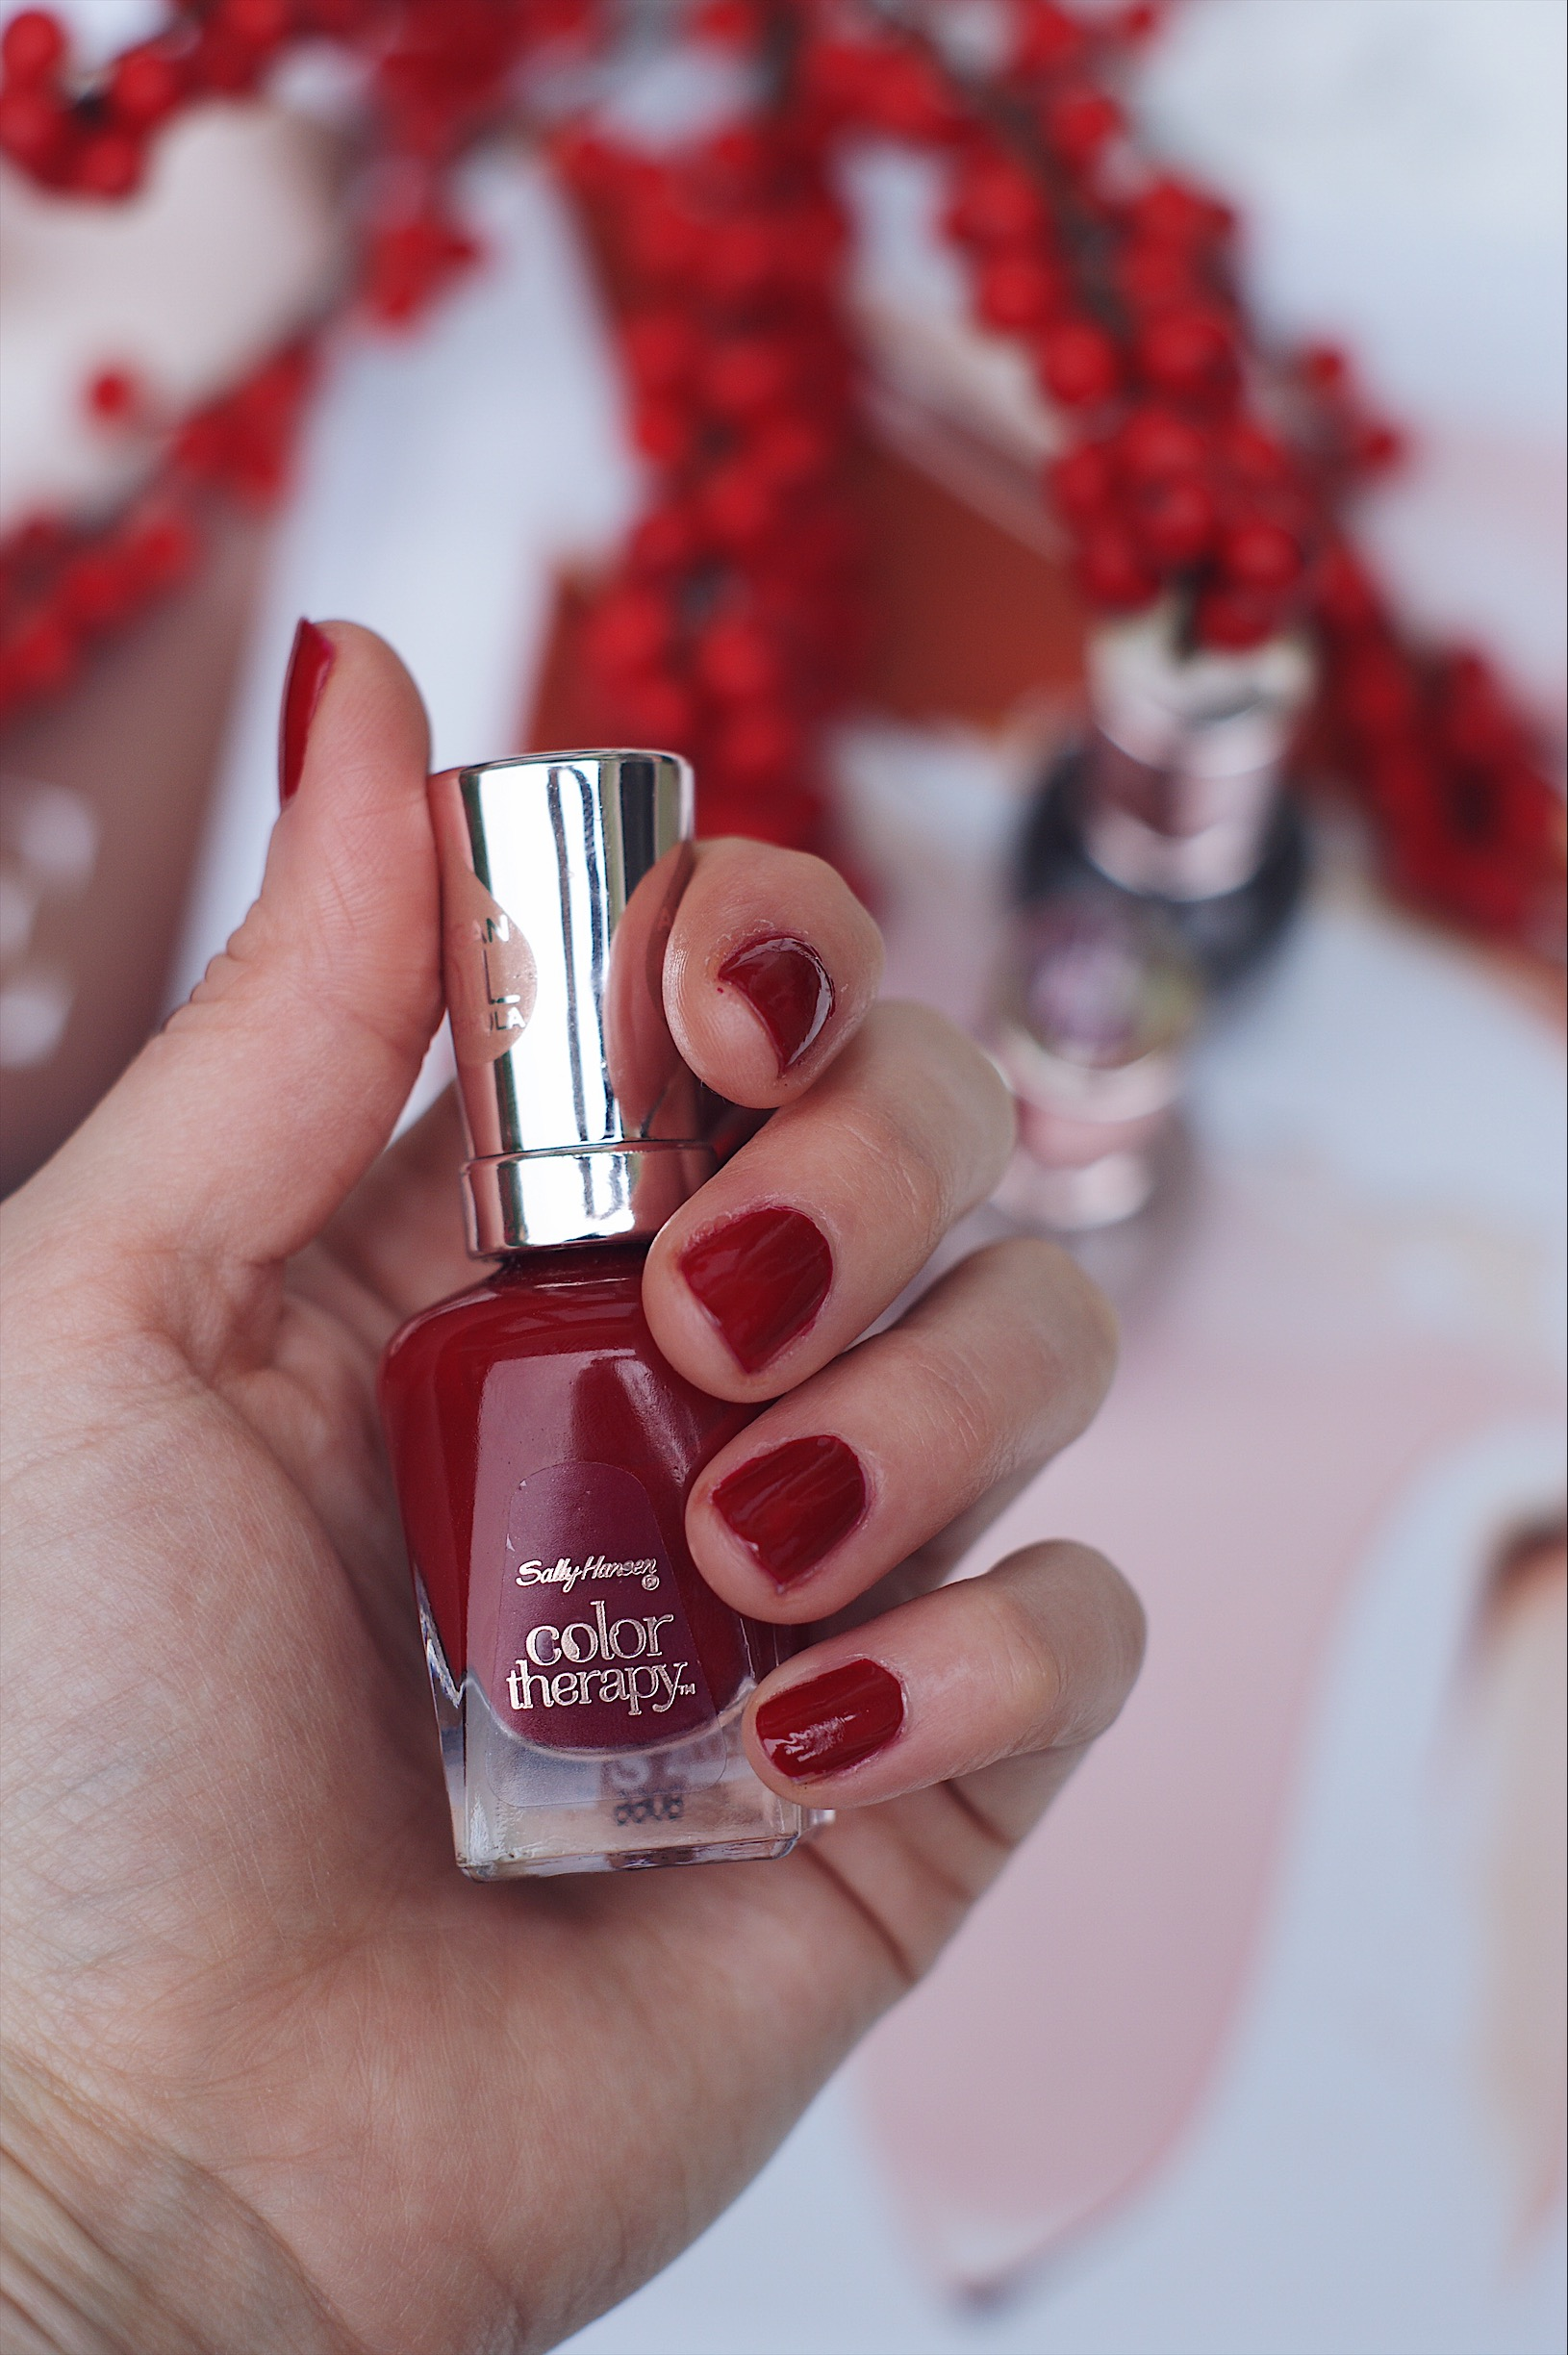 Sally Hansen Nagellack Herbst Red-y to glow